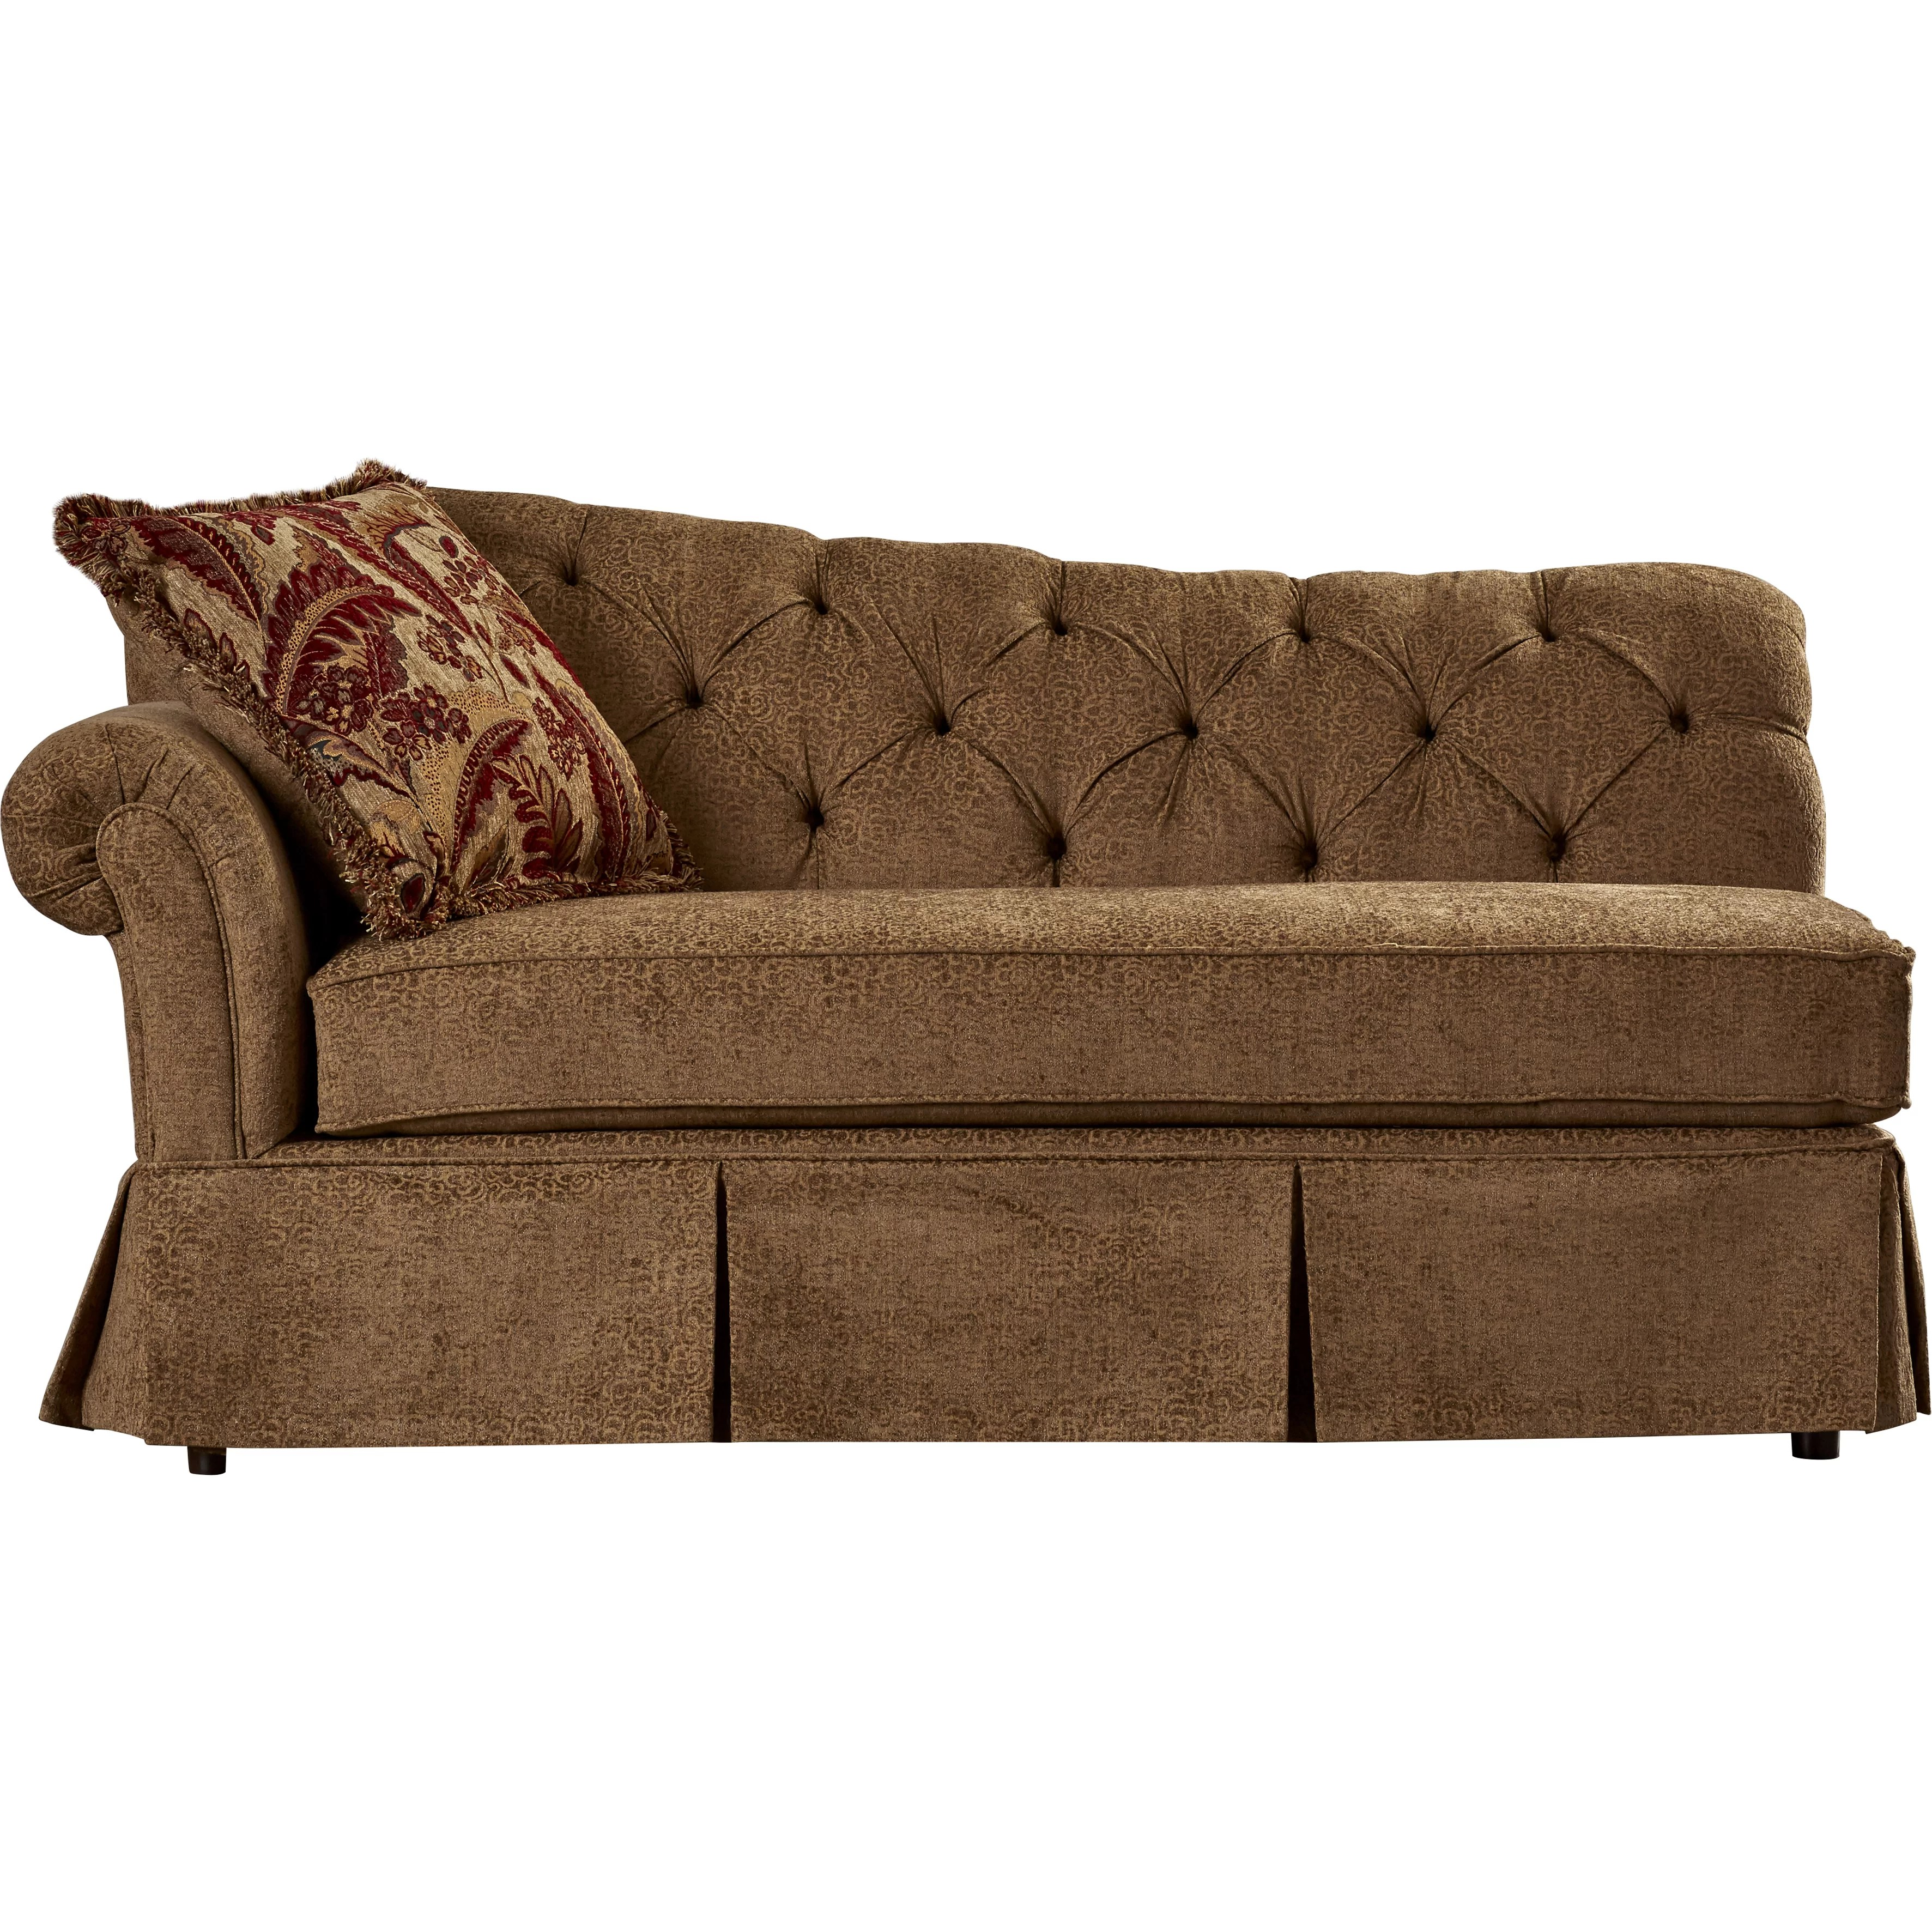 Astoria Grand John Upholstery Chaise Lounge & Reviews